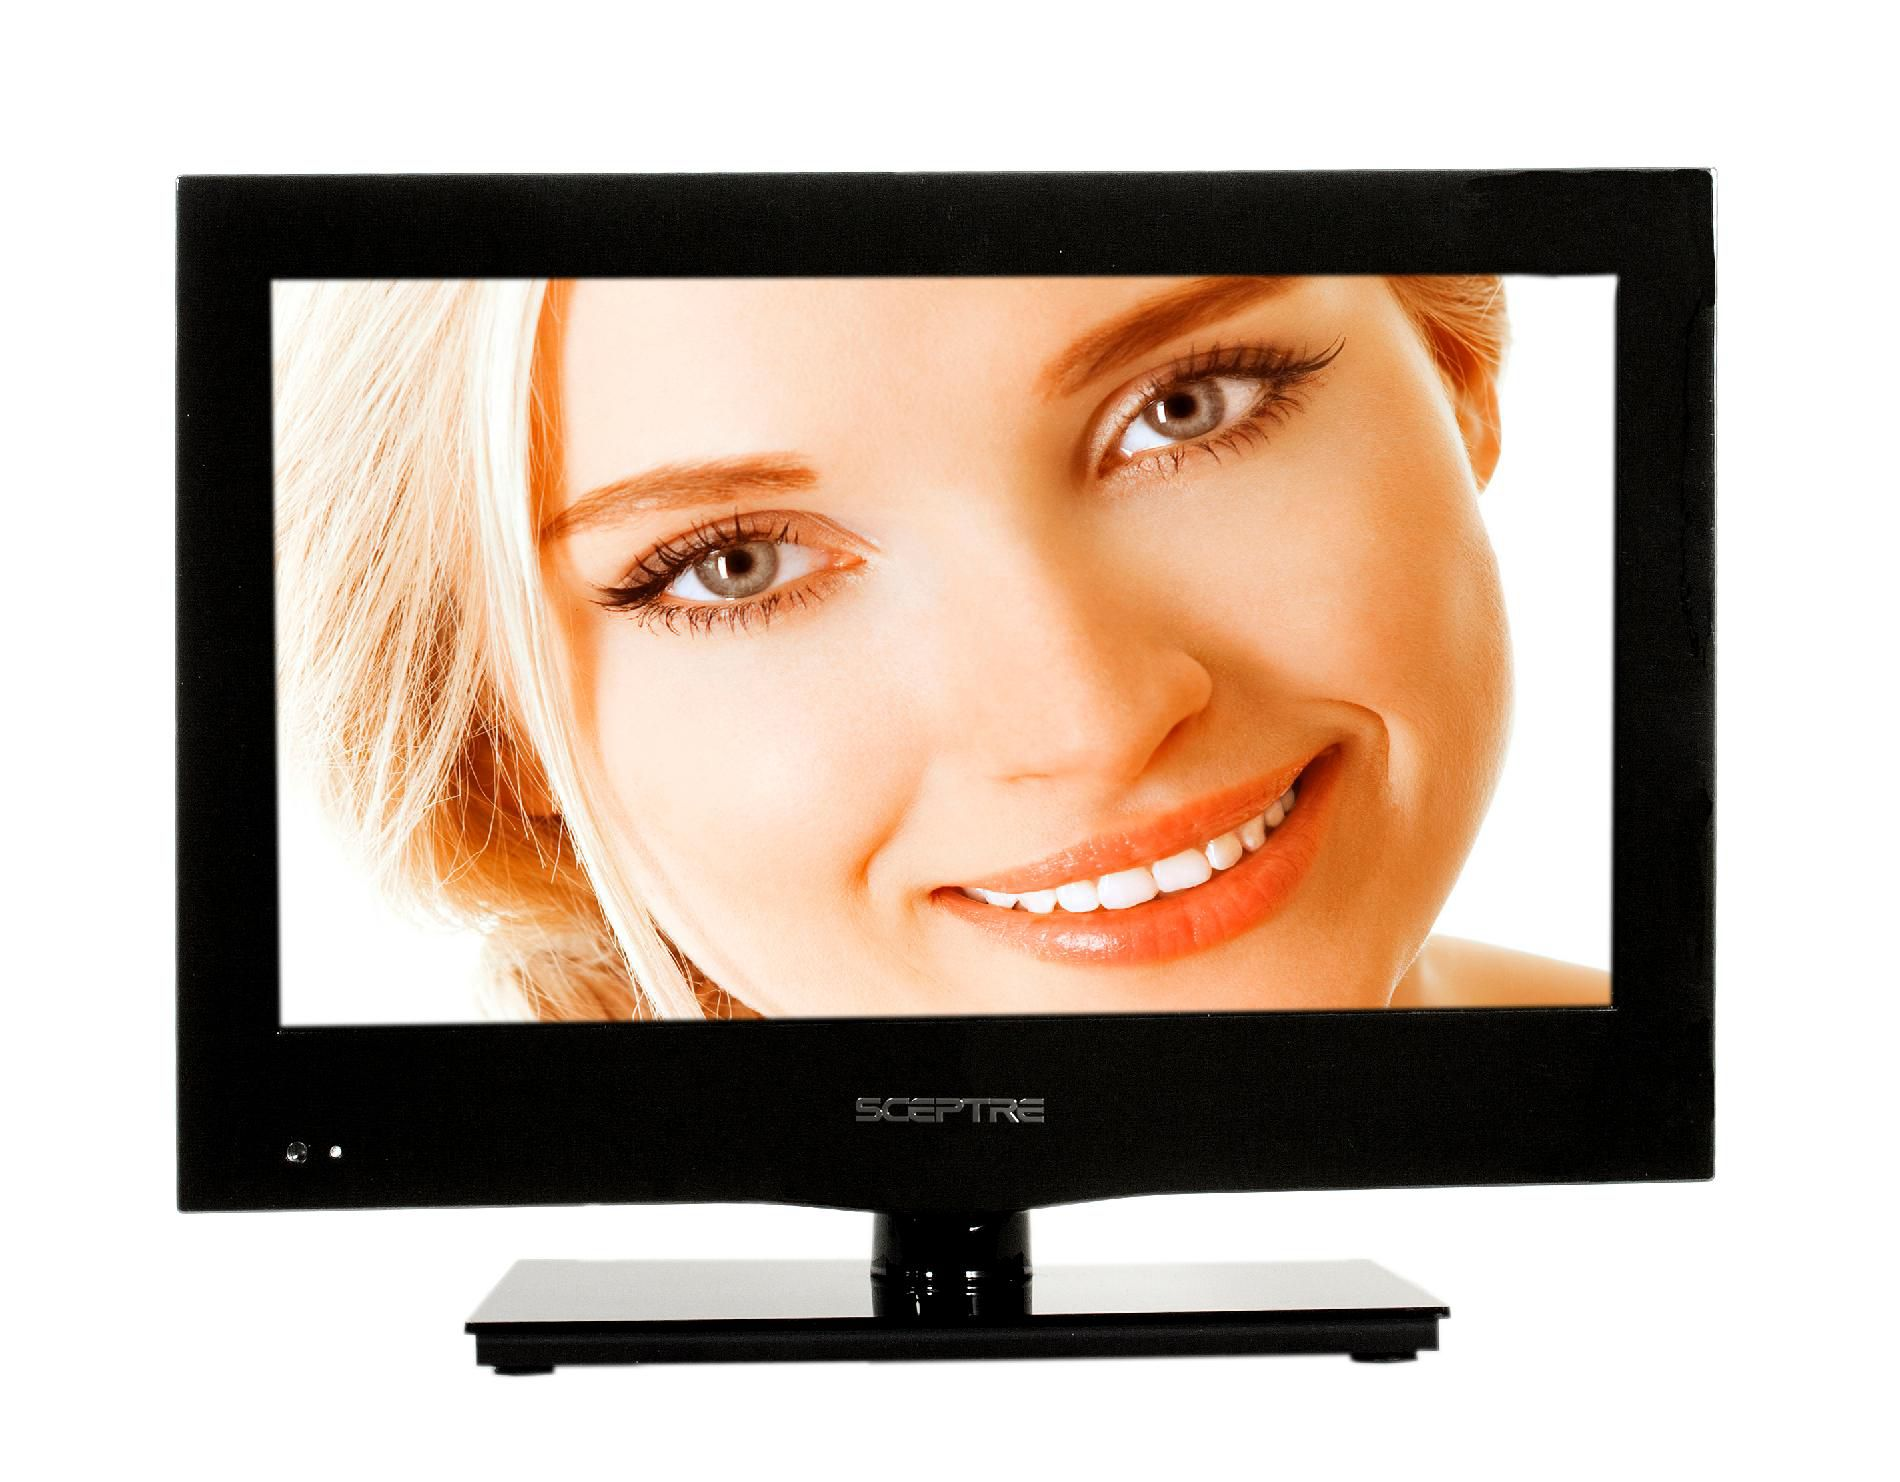 Sceptre E165BD-HD: 16 LED Class 720P HDTV with built-in DVD player 2xHDMI,